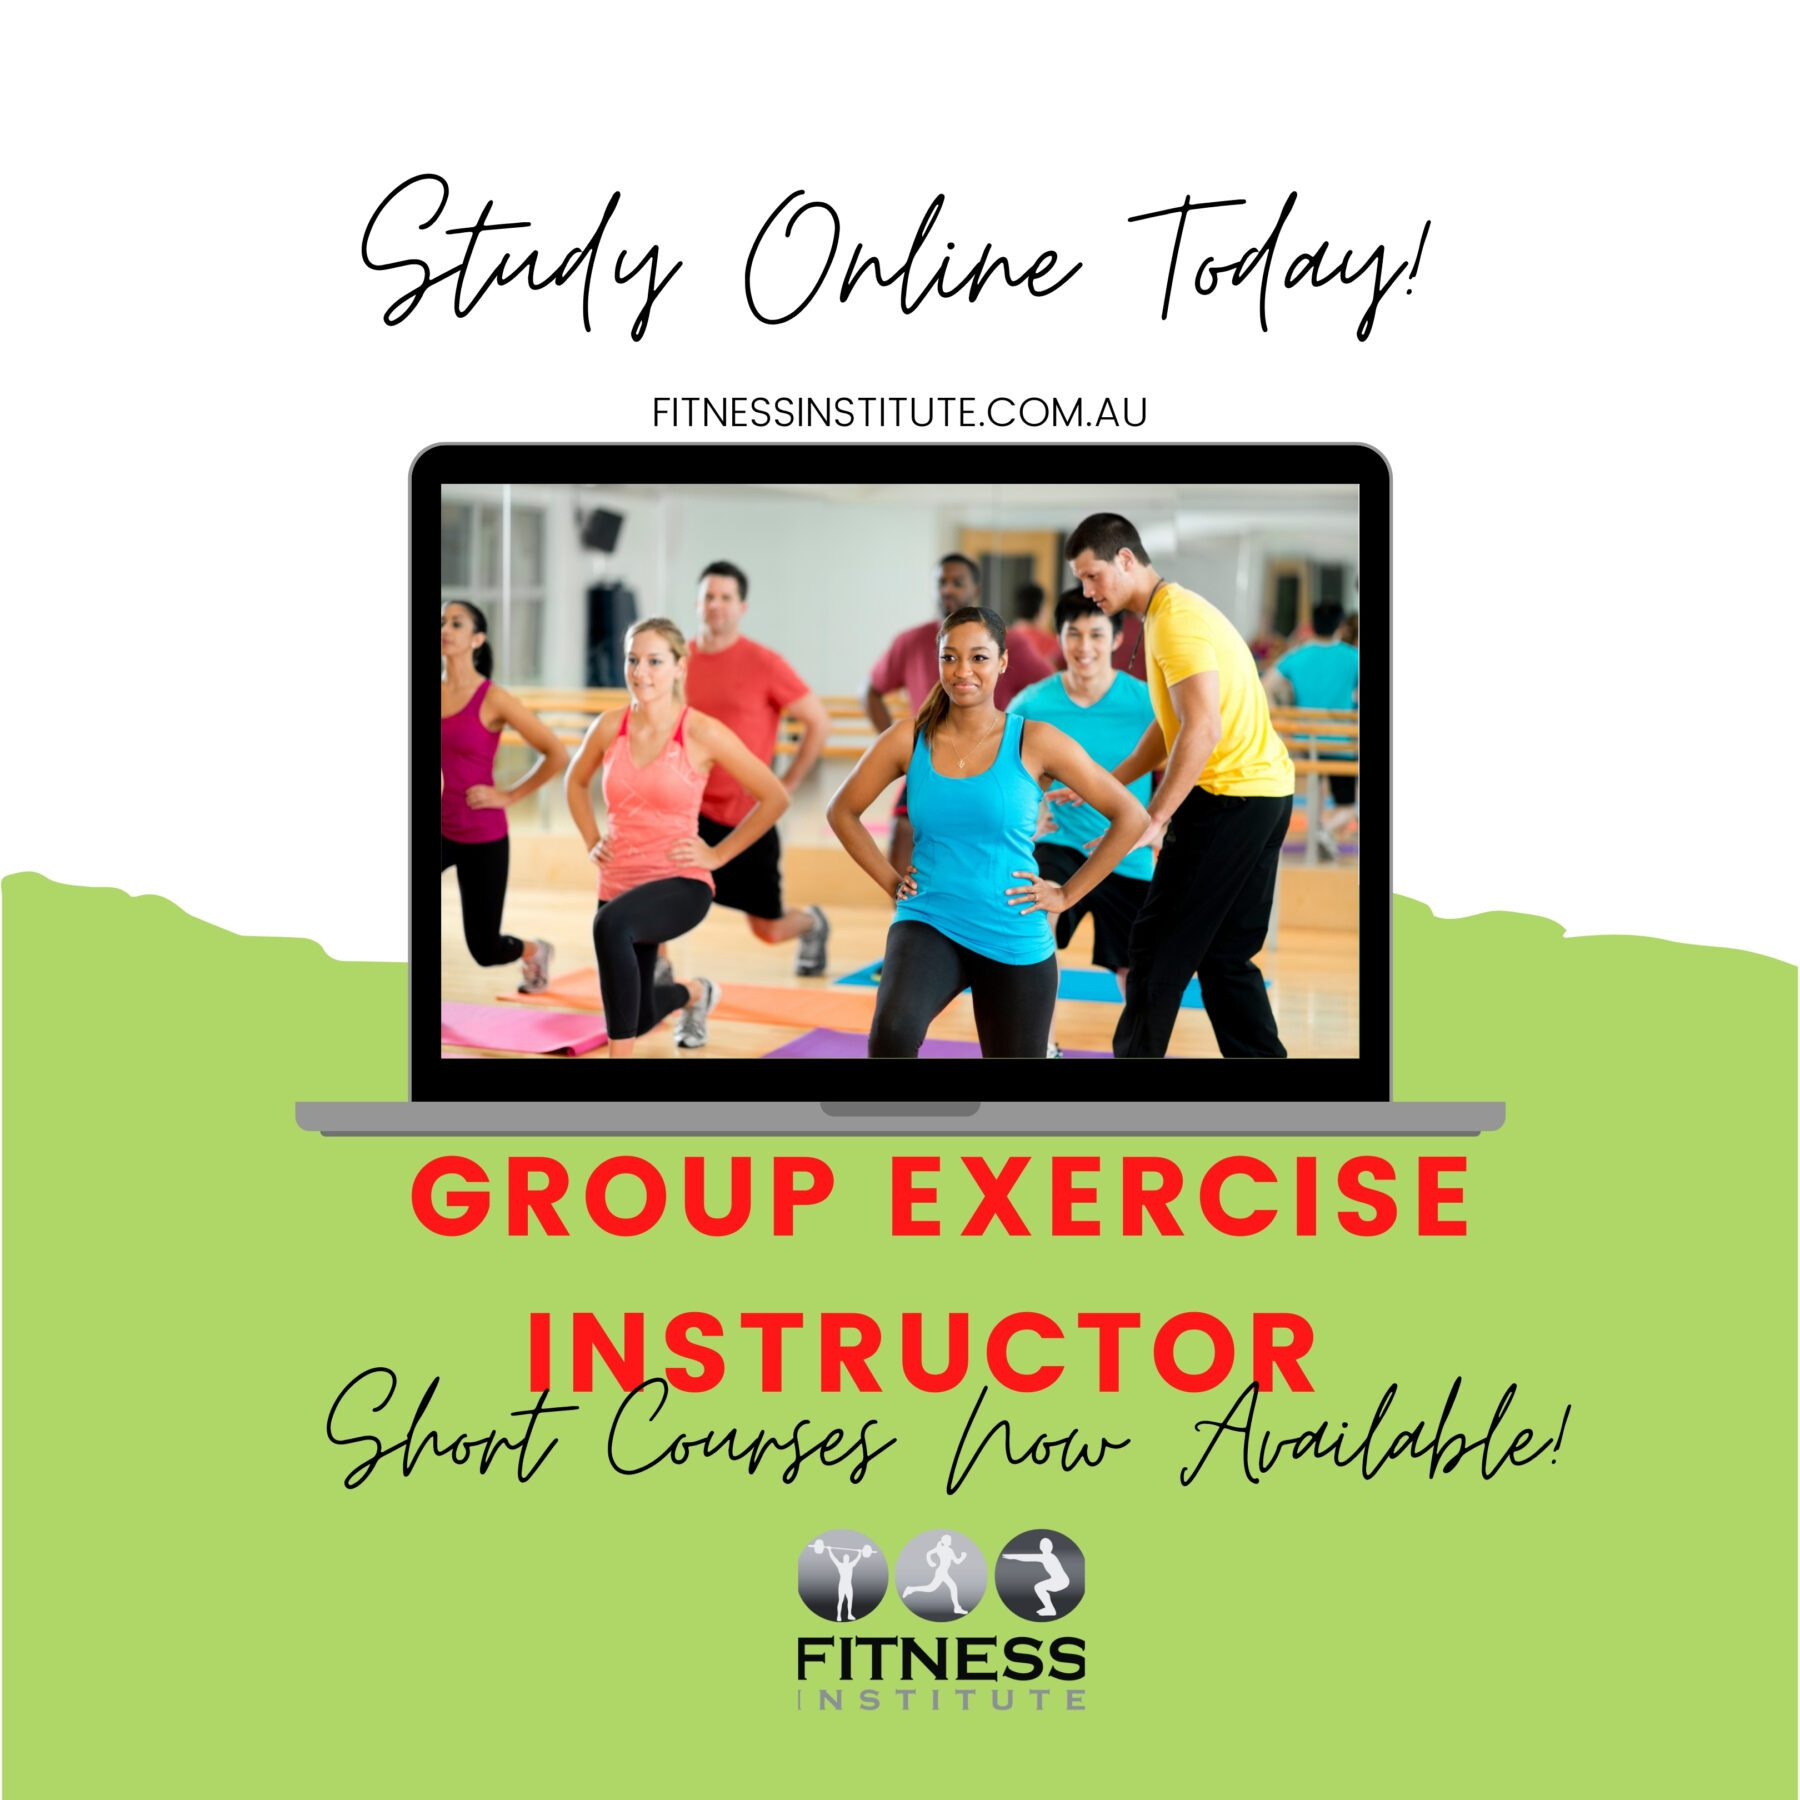 Group Exercise Short Course